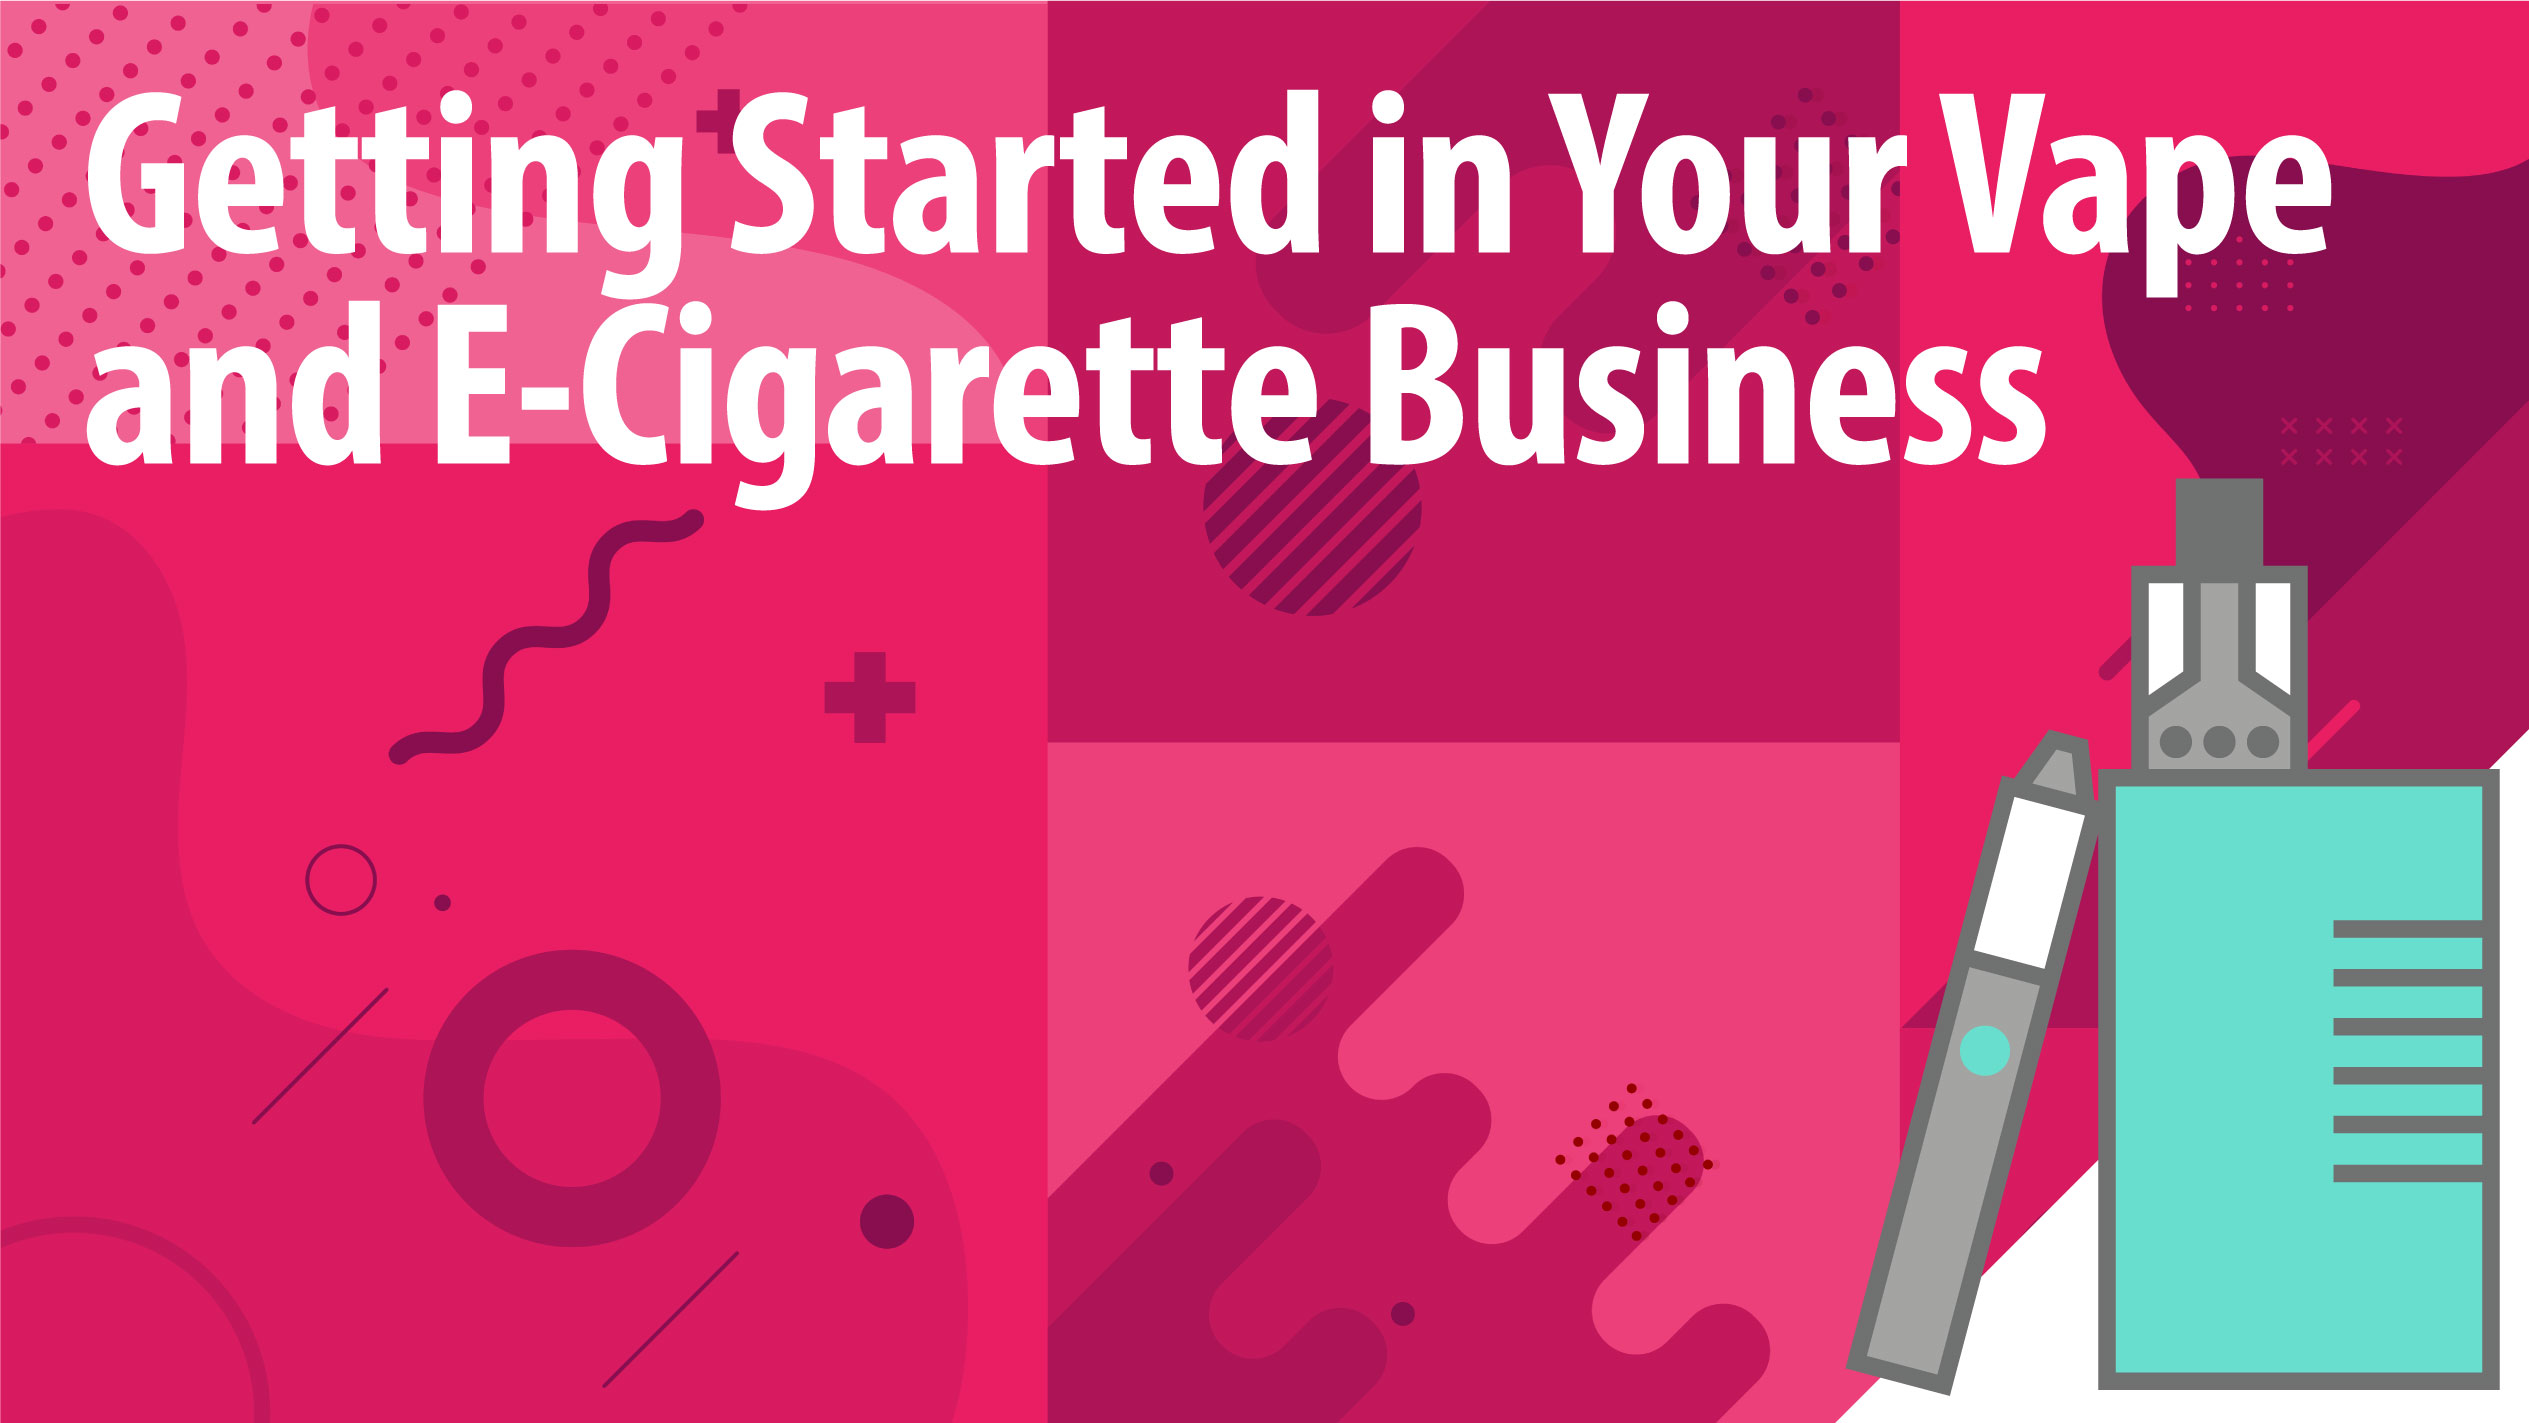 Getting Started in Your Vape and E-Cigarette Business